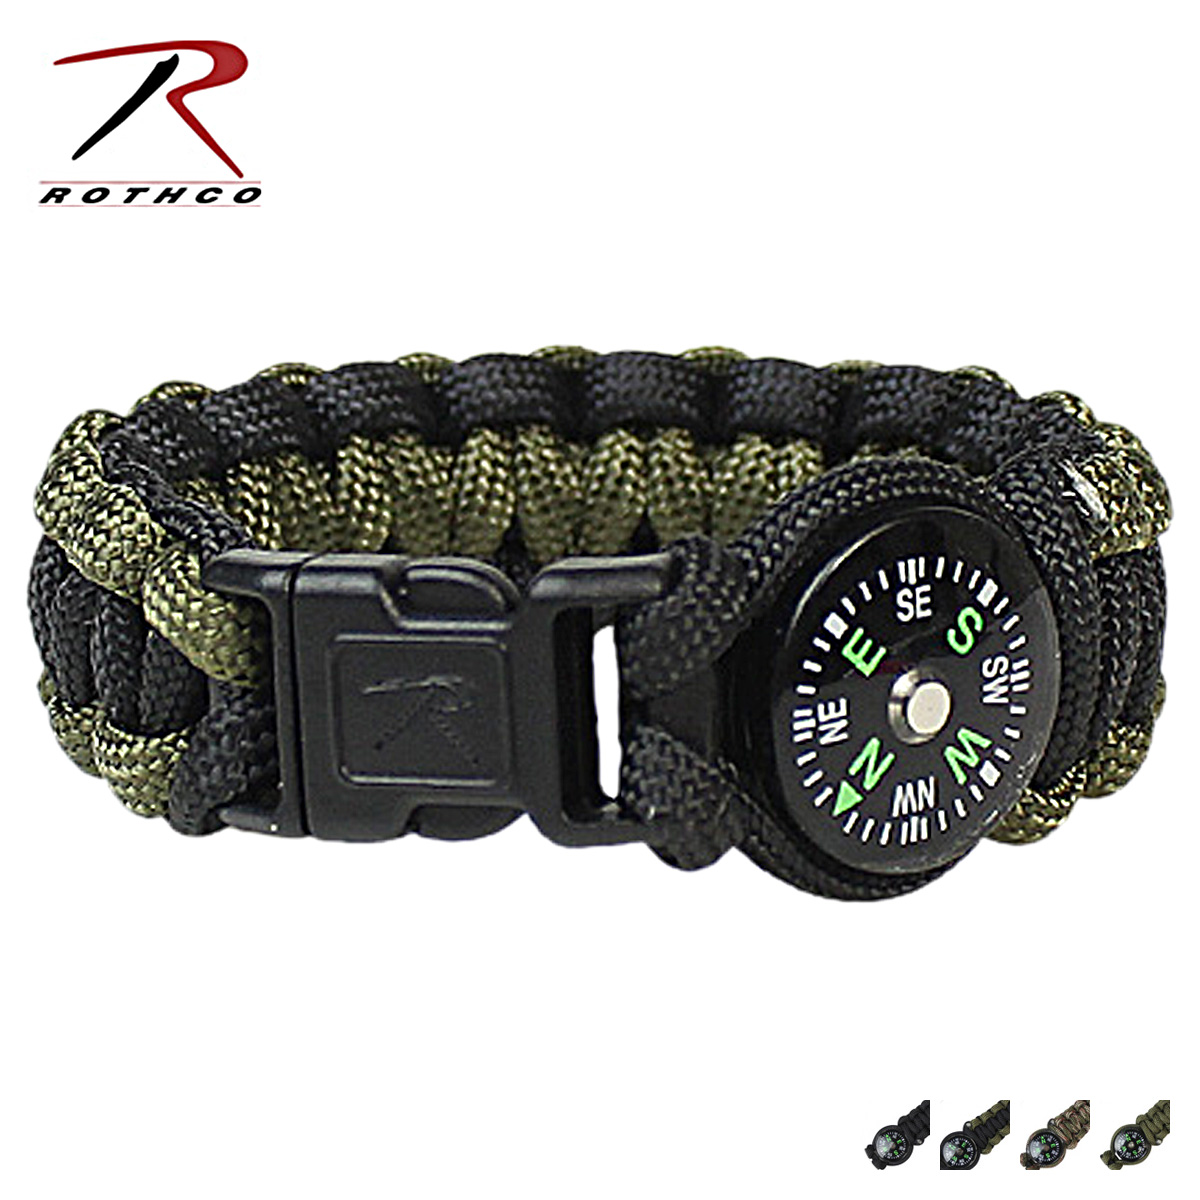 I Usually Carry It As The Bracelet Which Is Military Who Knit A Para Cord